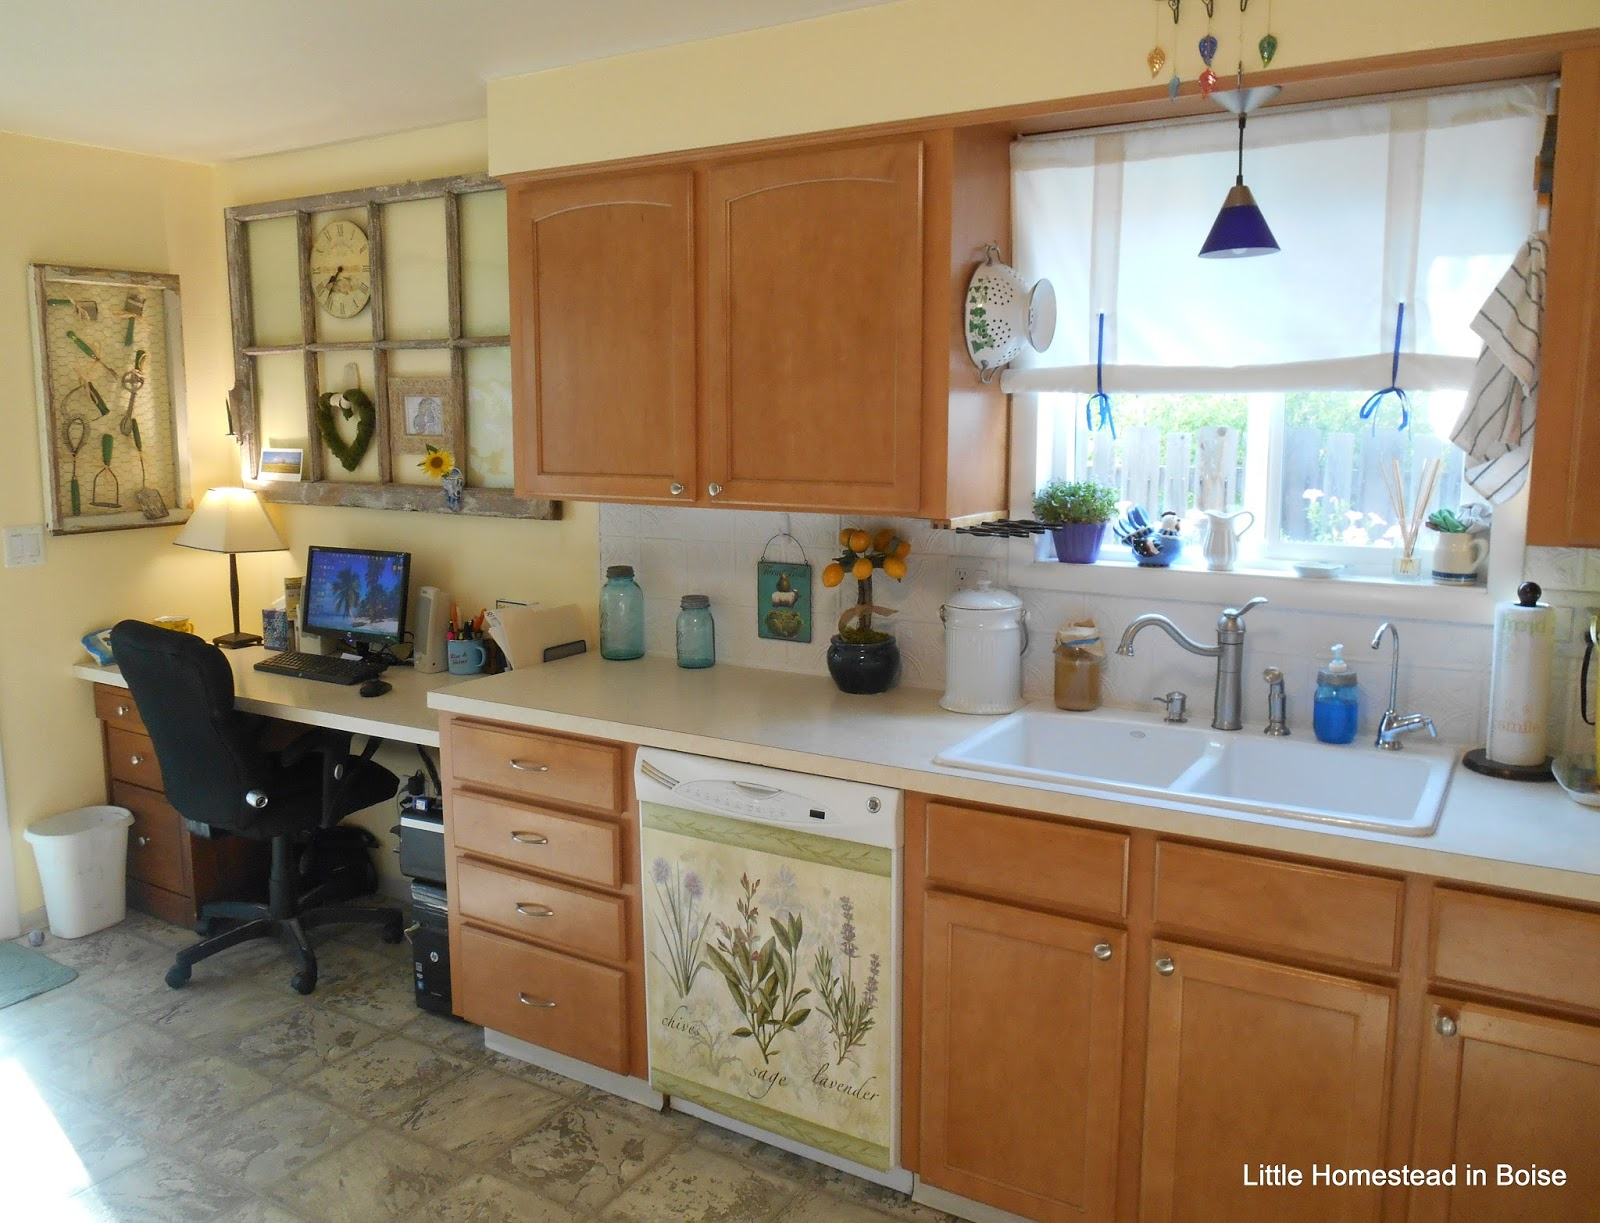 My Budget Kitchen Makeover Finished!